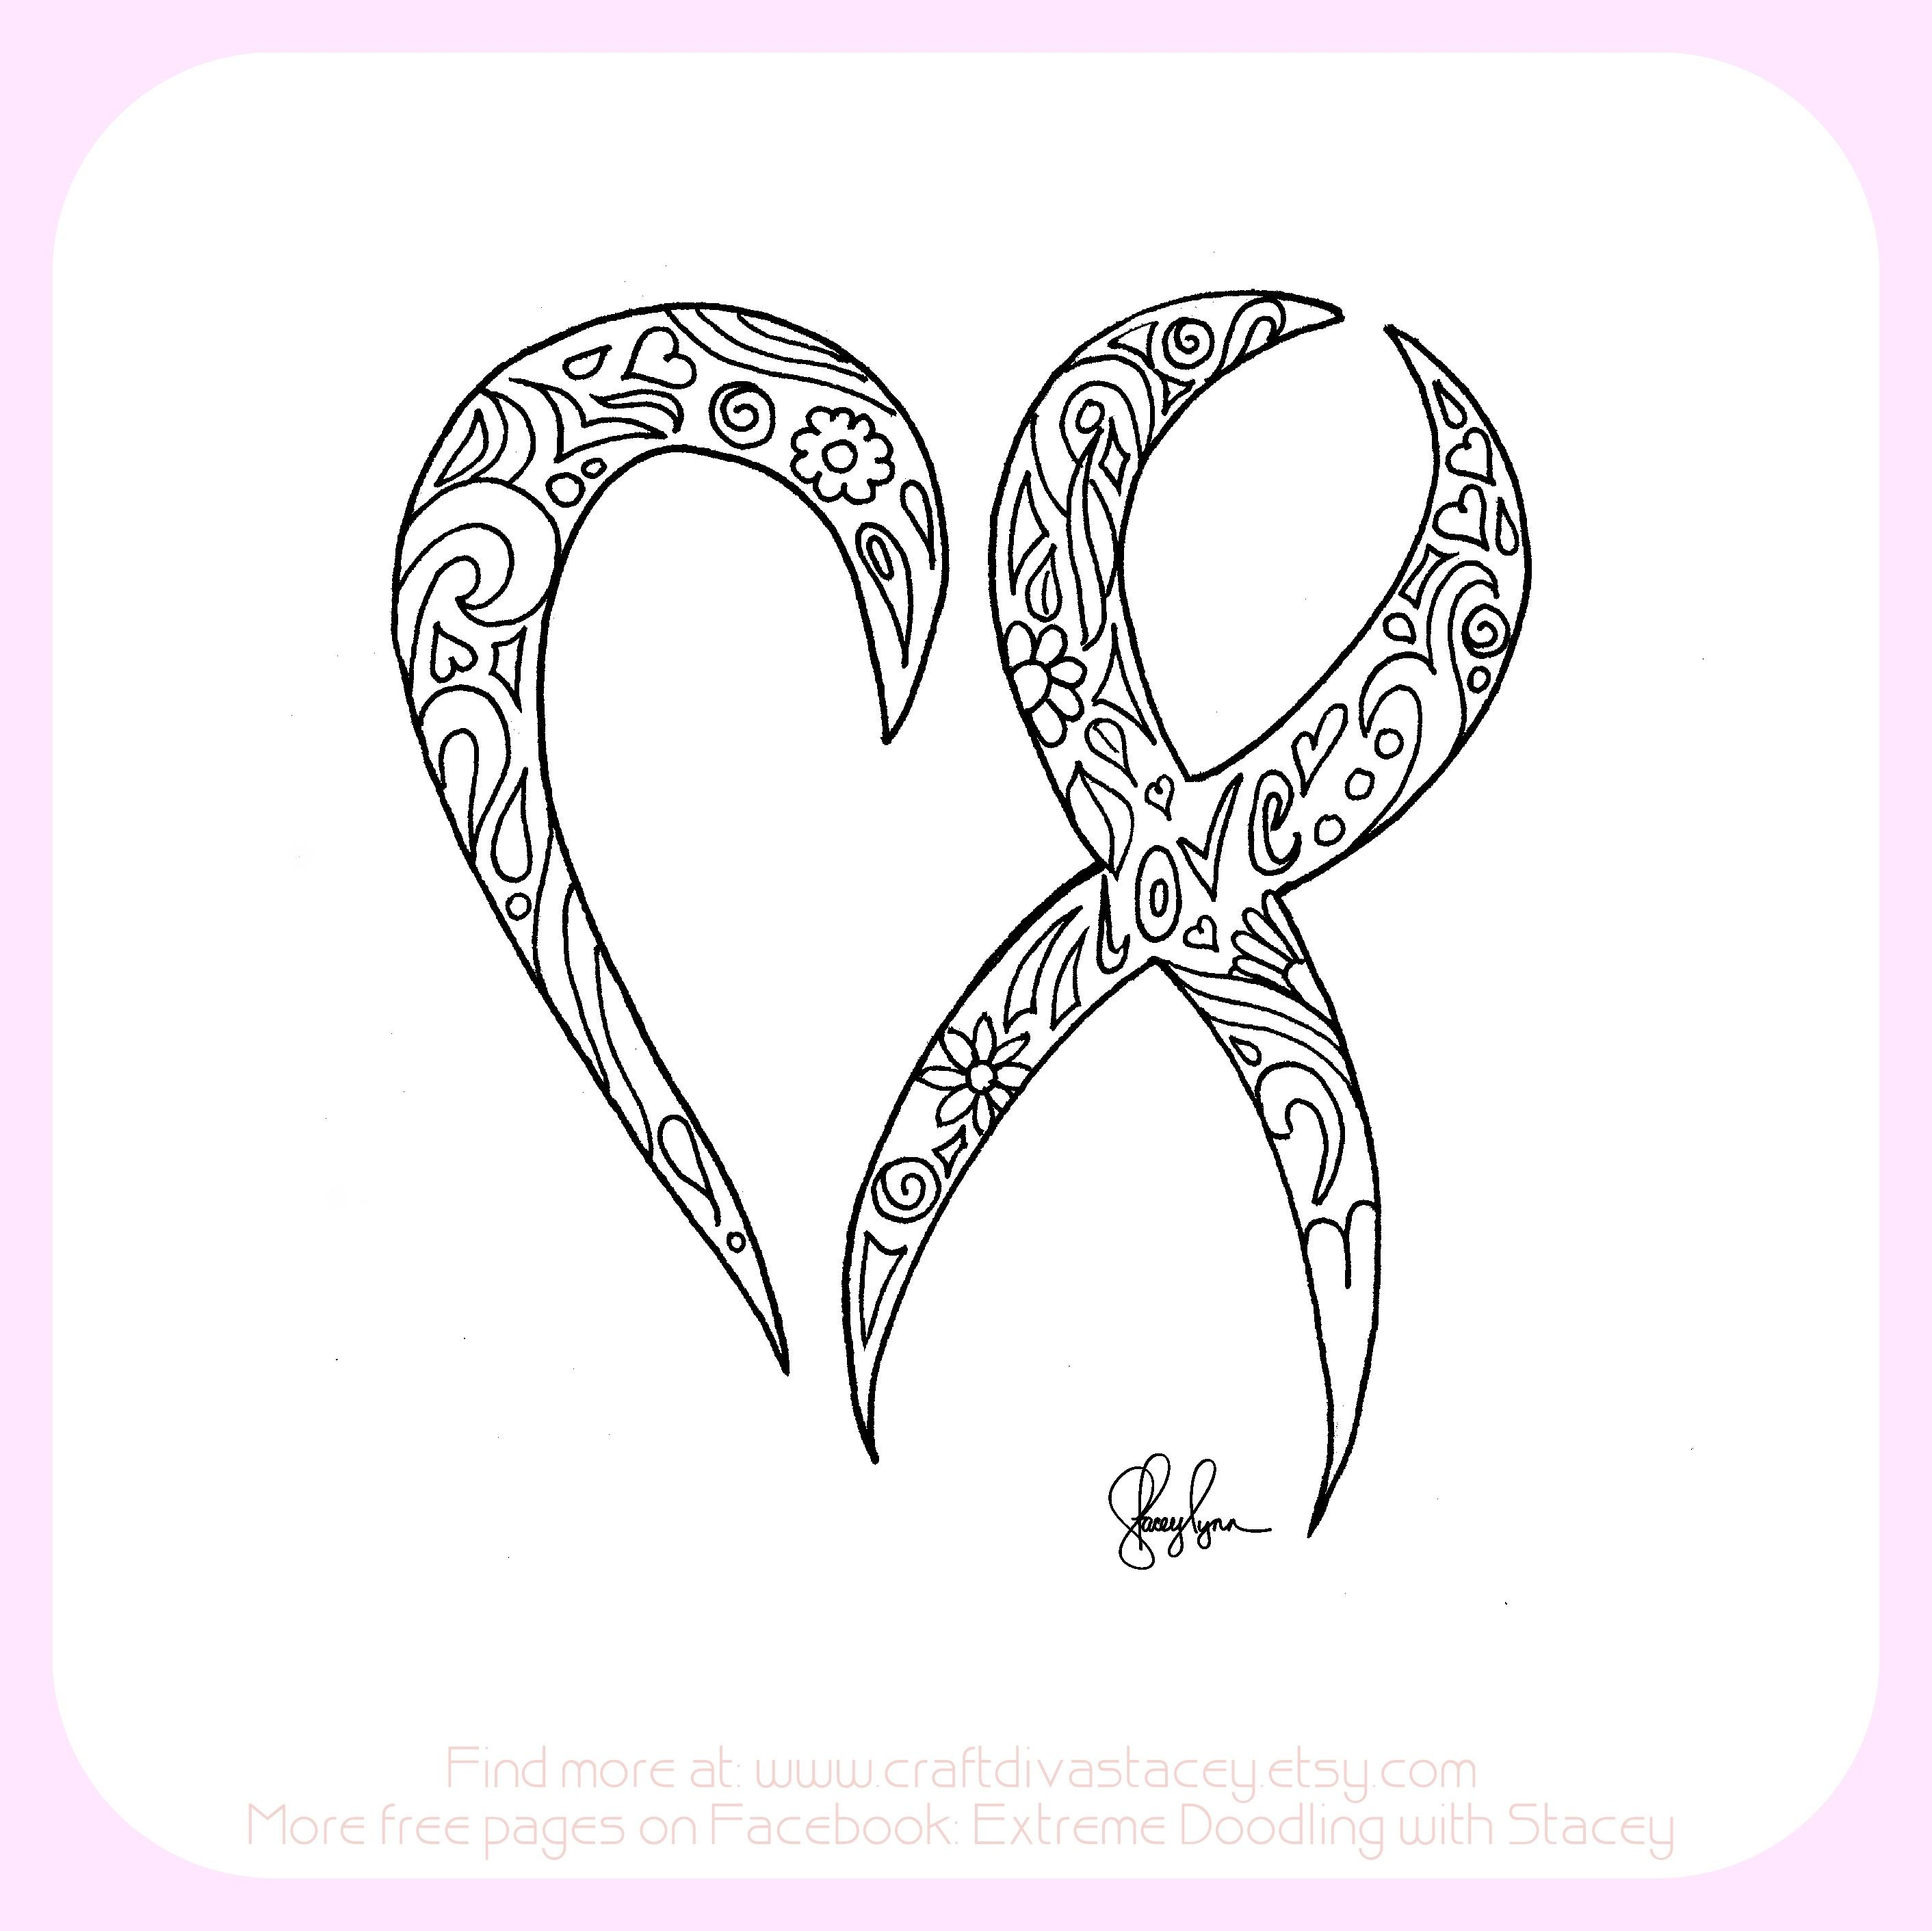 2824x2822 Ribbon Coloring Page Save Have A Heart For Cancer Cancer Ribbon